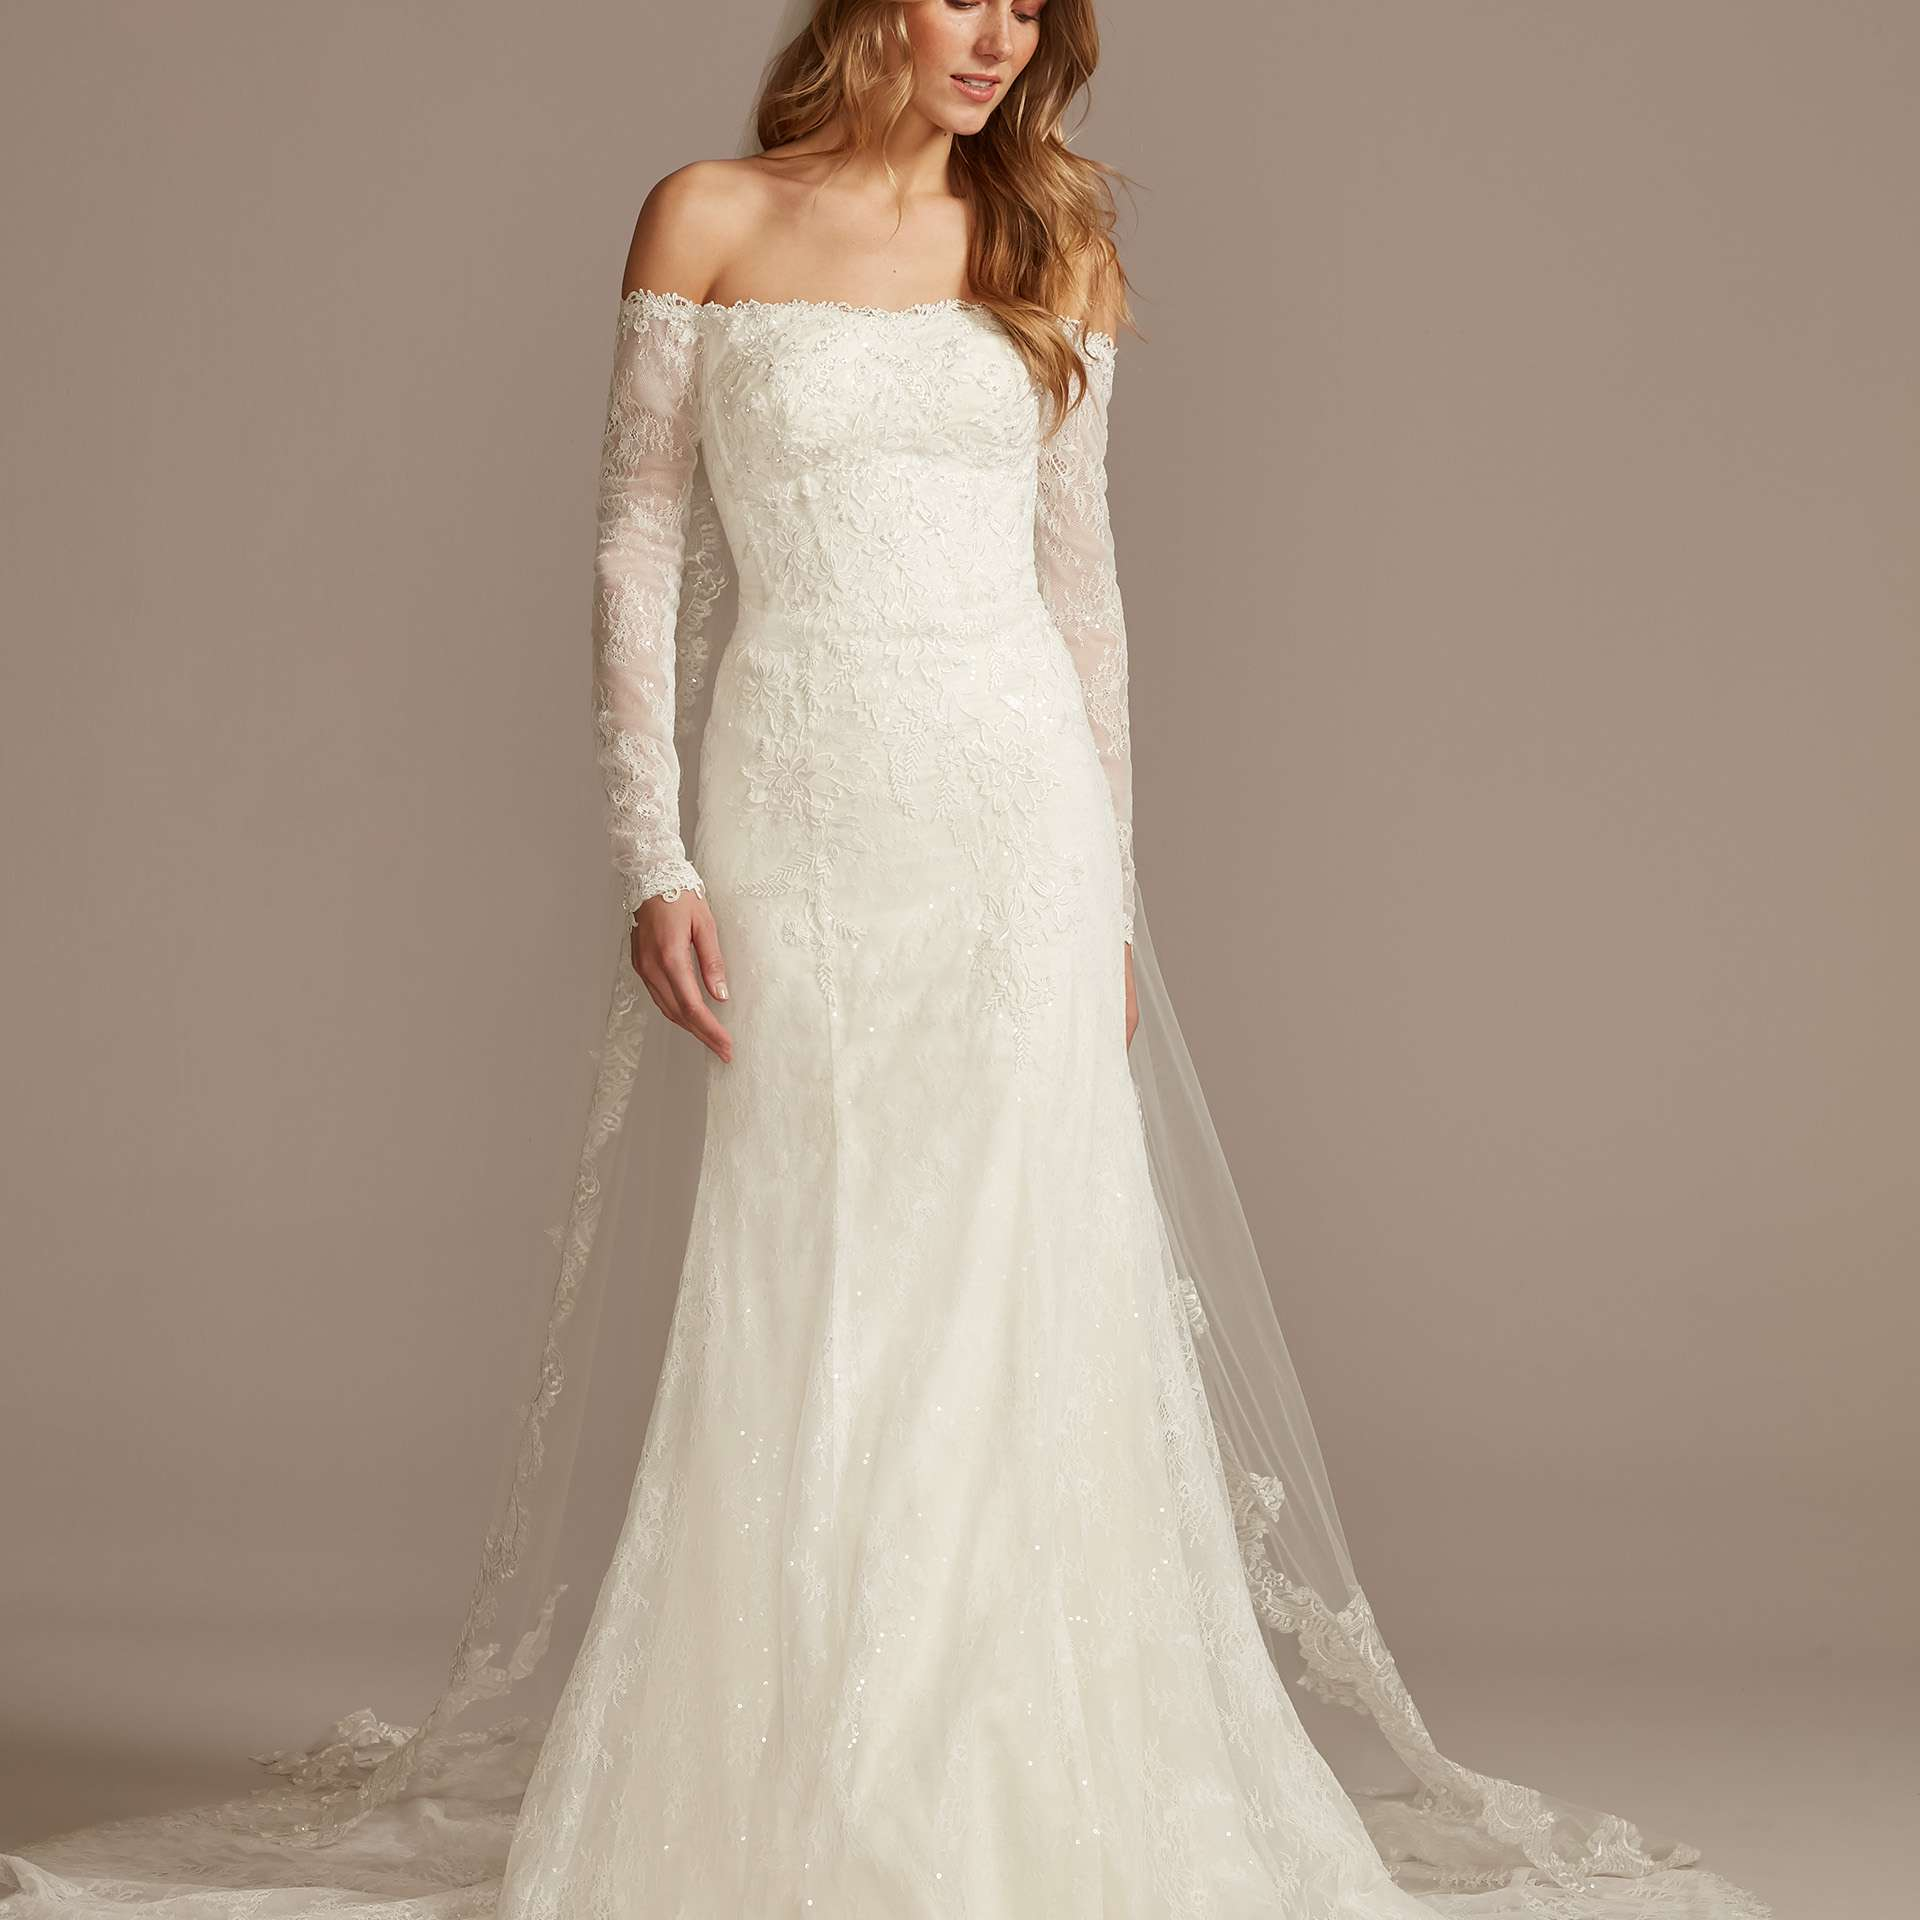 Galina Signature For David S Bridal Wedding Dresses By Season,Dresses For Toddlers For Weddings